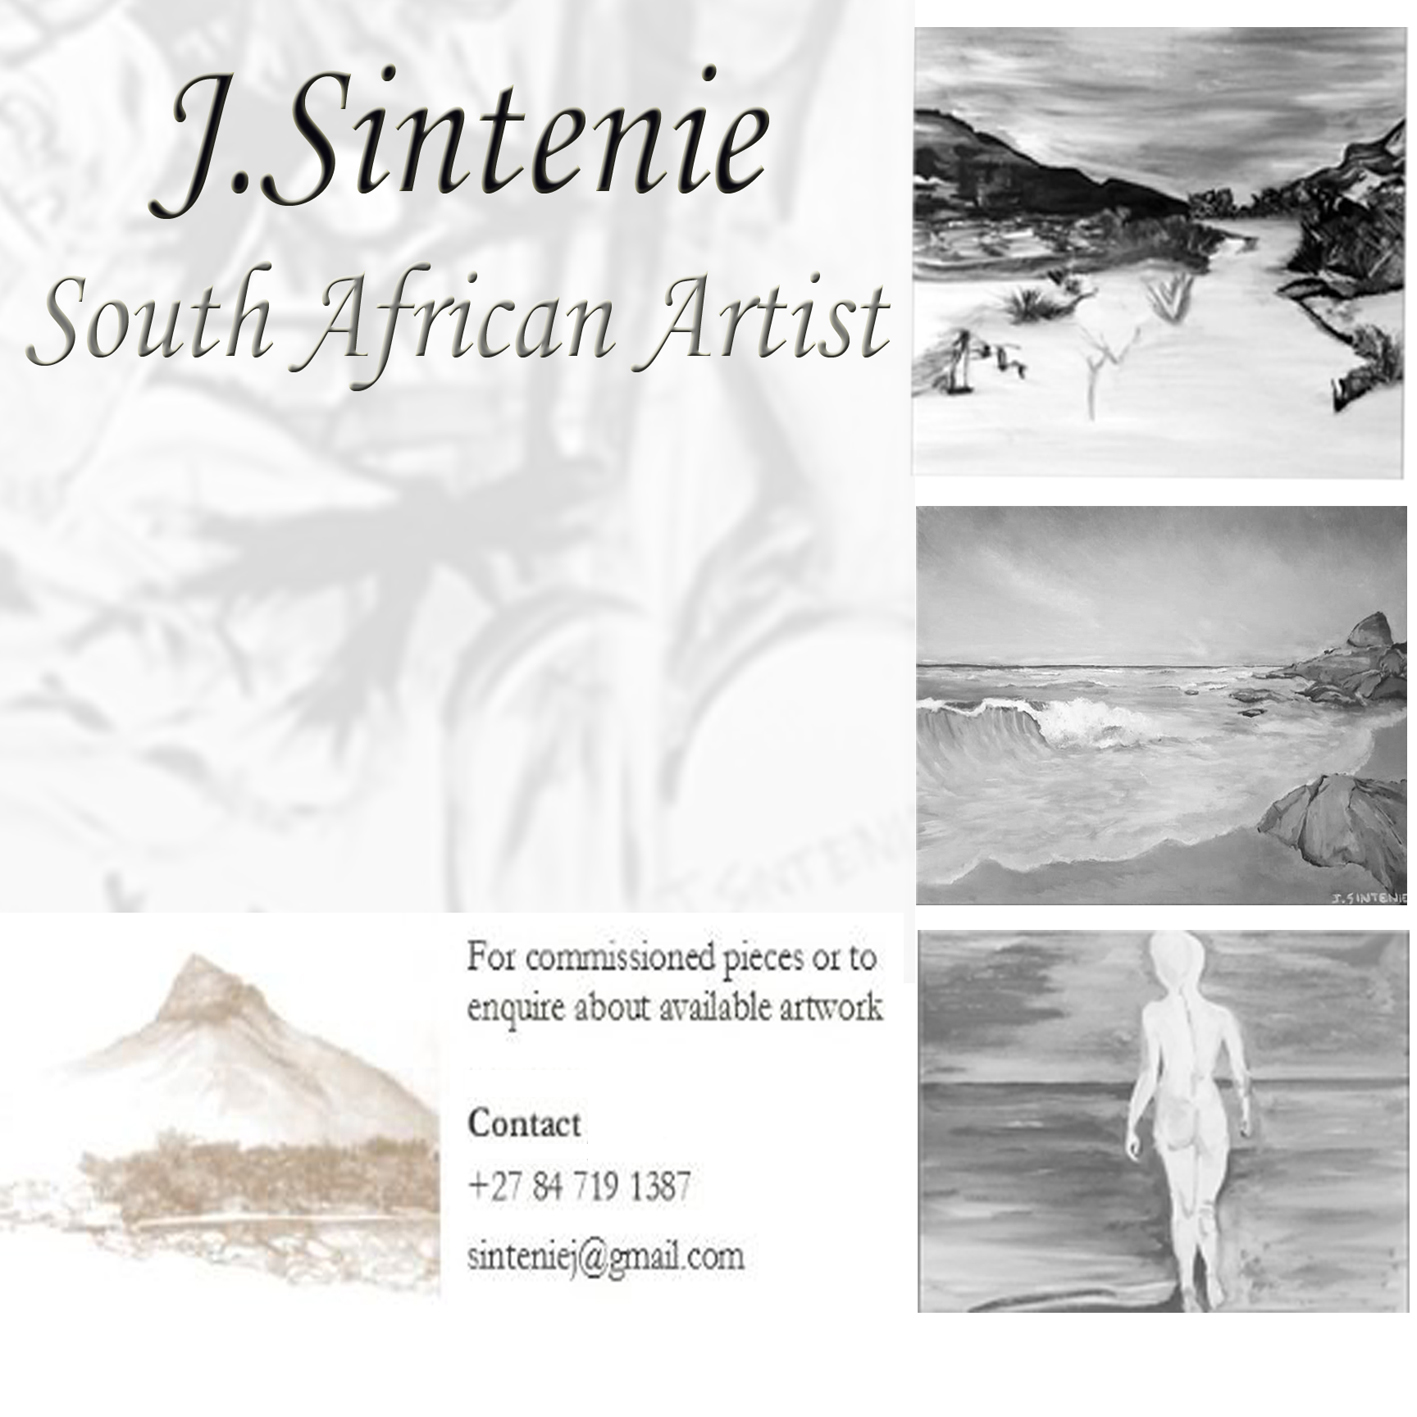 Original Artwork, commissions and live art performances available.